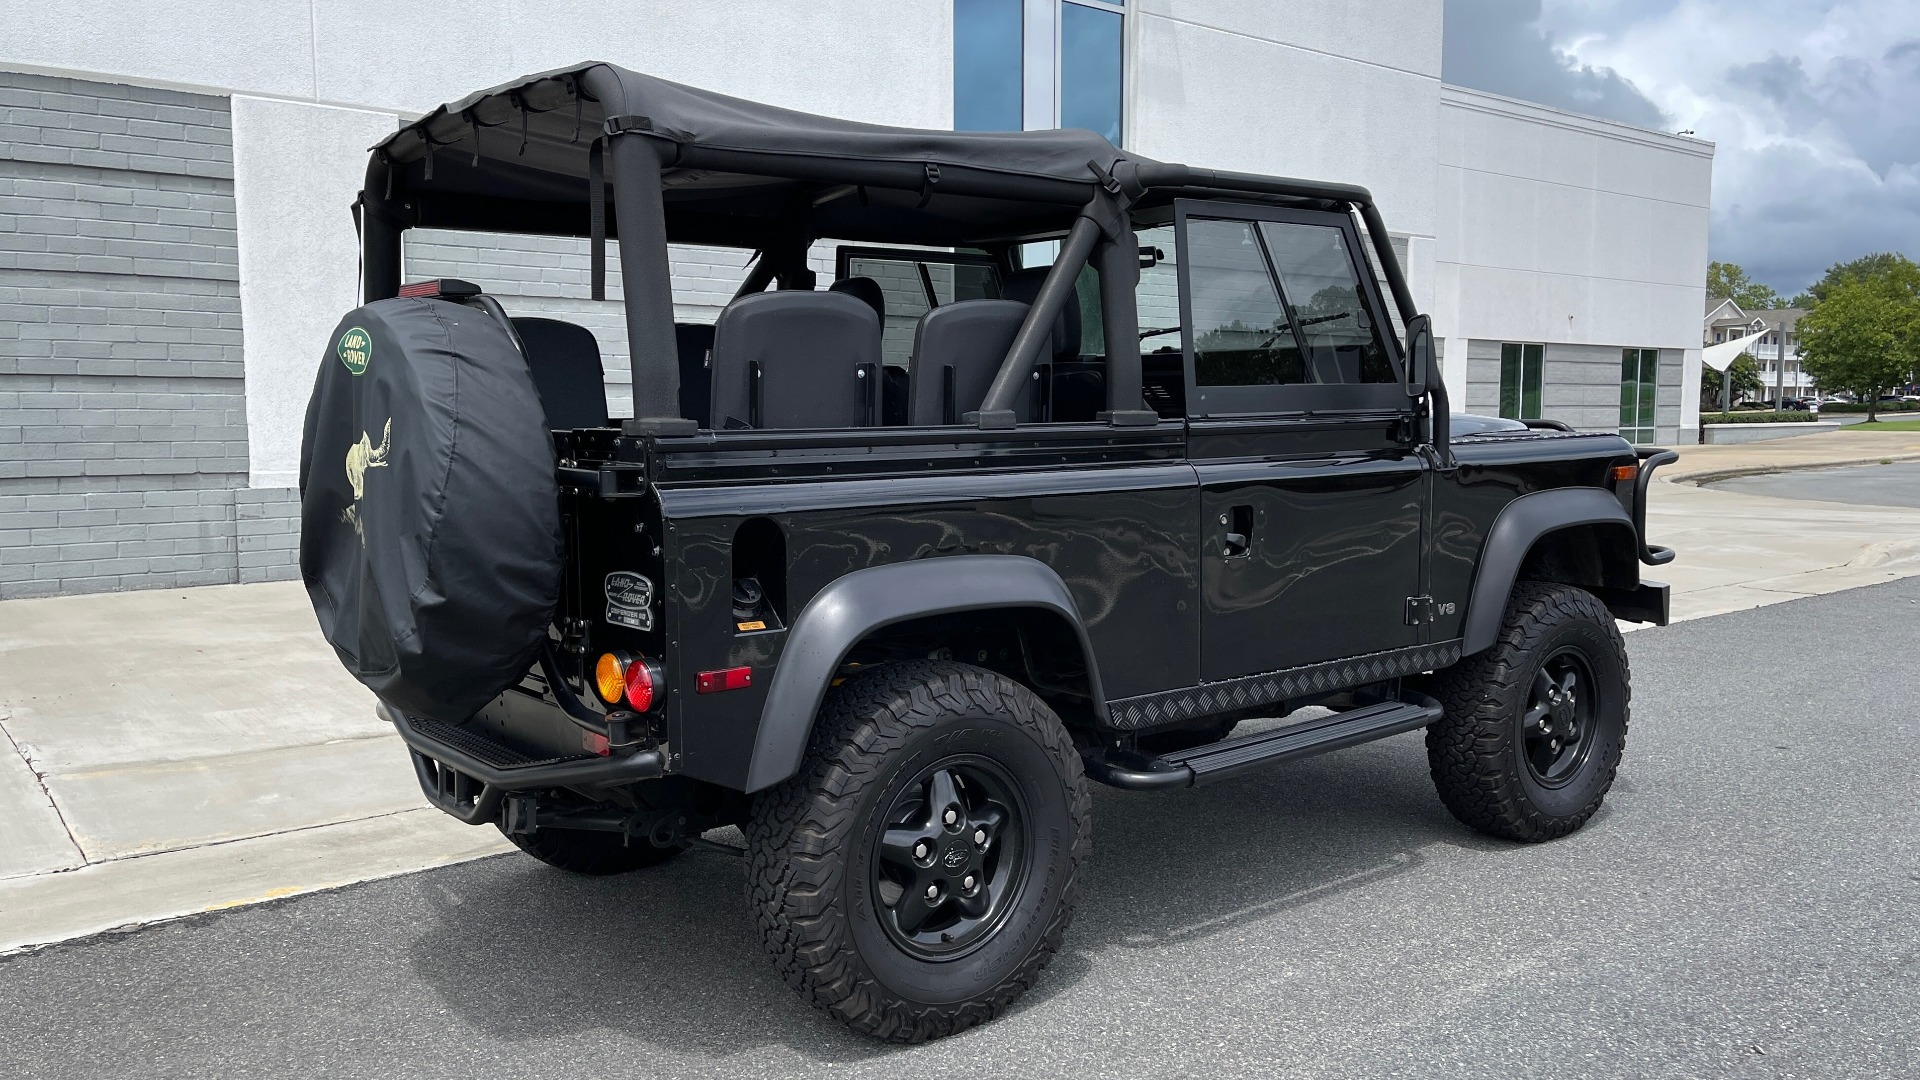 Used 1995 Land Rover DEFENDER 90 4x4 / 3.9L V8 / SOFT-TOP / 5-SPD MANUAL / RUNS GREAT for sale $74,383 at Formula Imports in Charlotte NC 28227 10